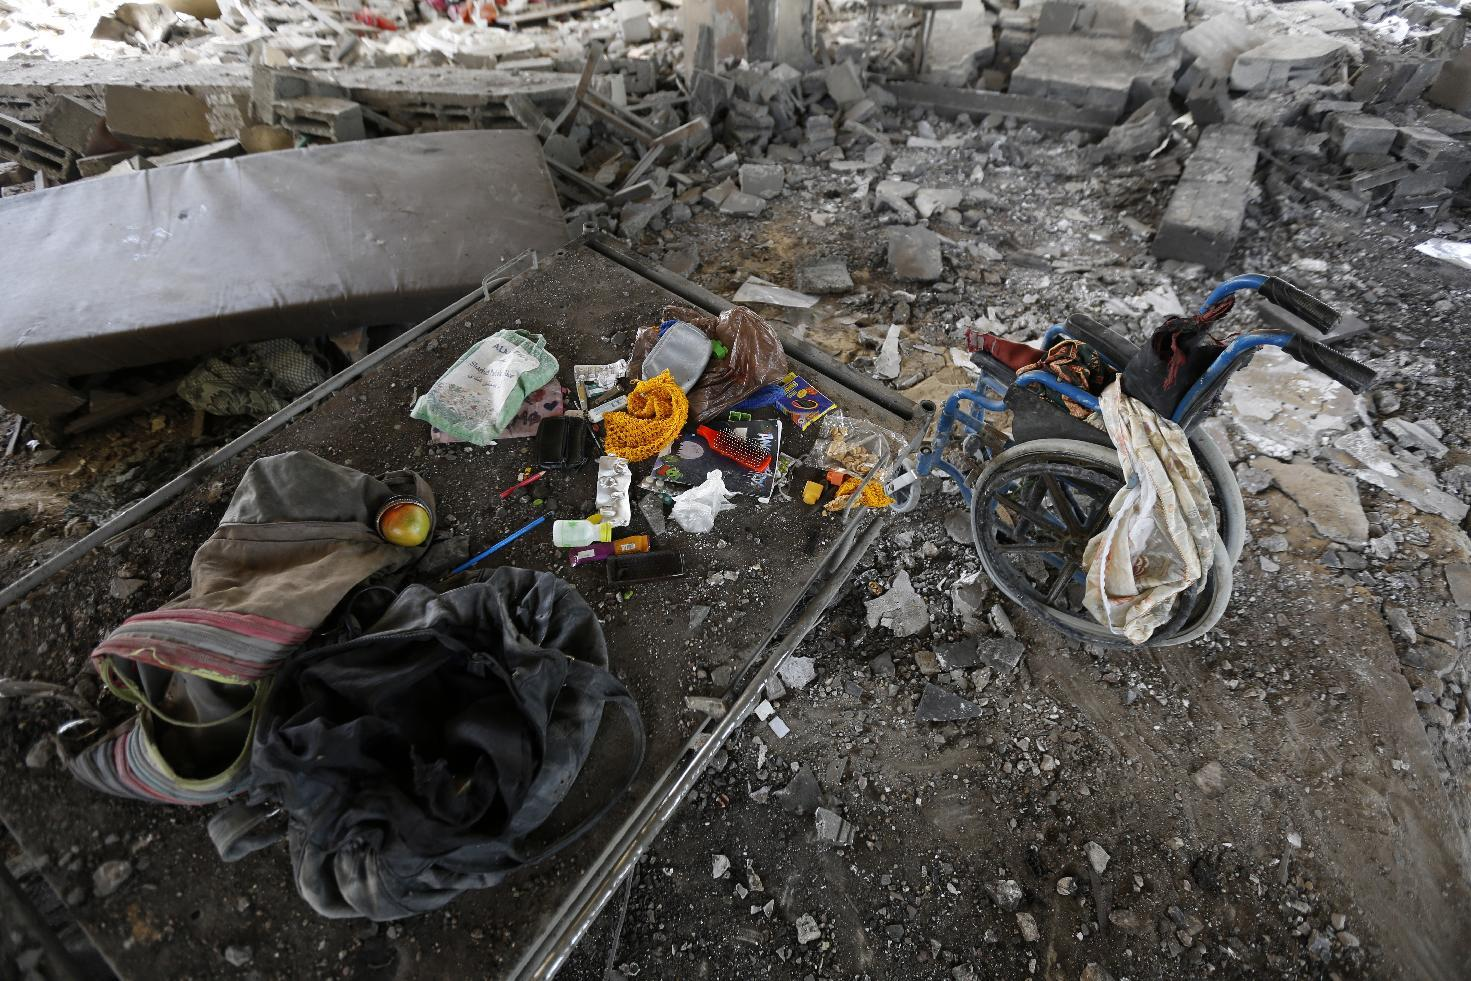 The contents of a Palestinian center for people with special needs are gathered after an Israeli air strike in Beit Lahia, northern Gaza Strip, on July 12, 2014 (AFP Photo/Mohammed Abed)